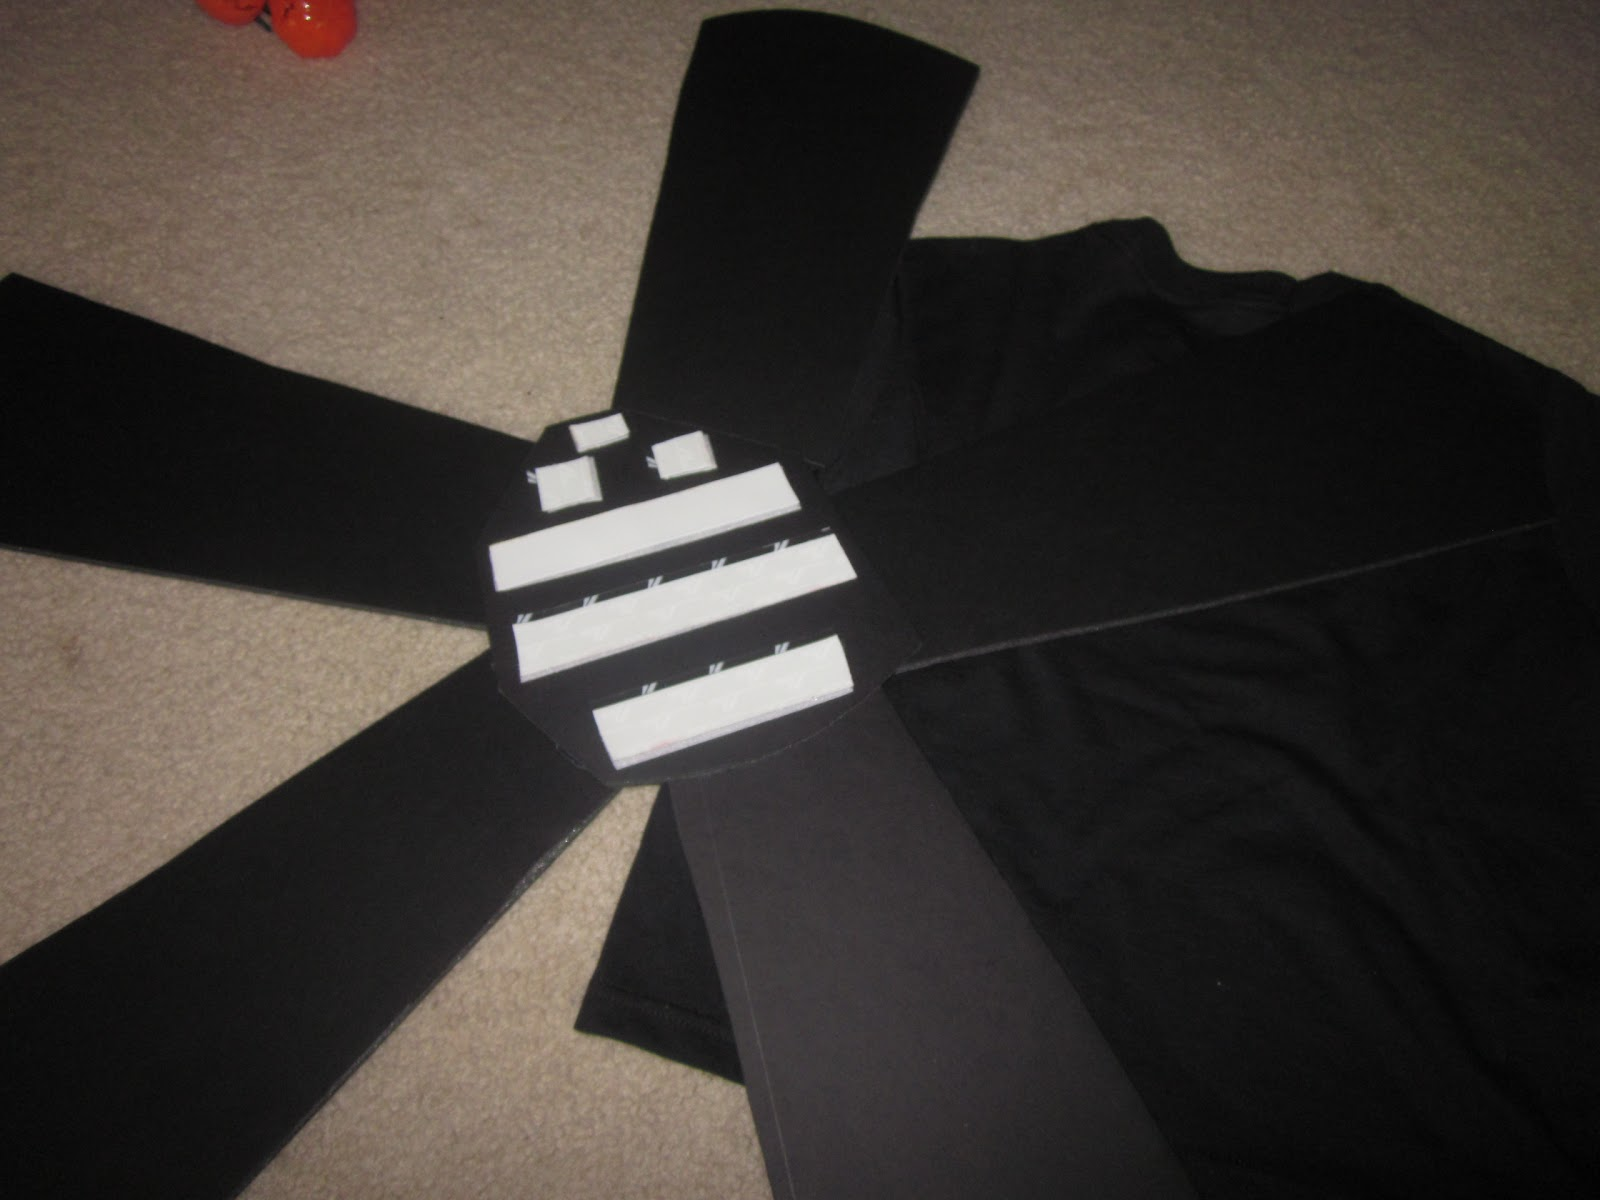 Whispers and shouts how to make ceiling fan costumes in 38 easy steps velcro ing fan to shirt aloadofball Images